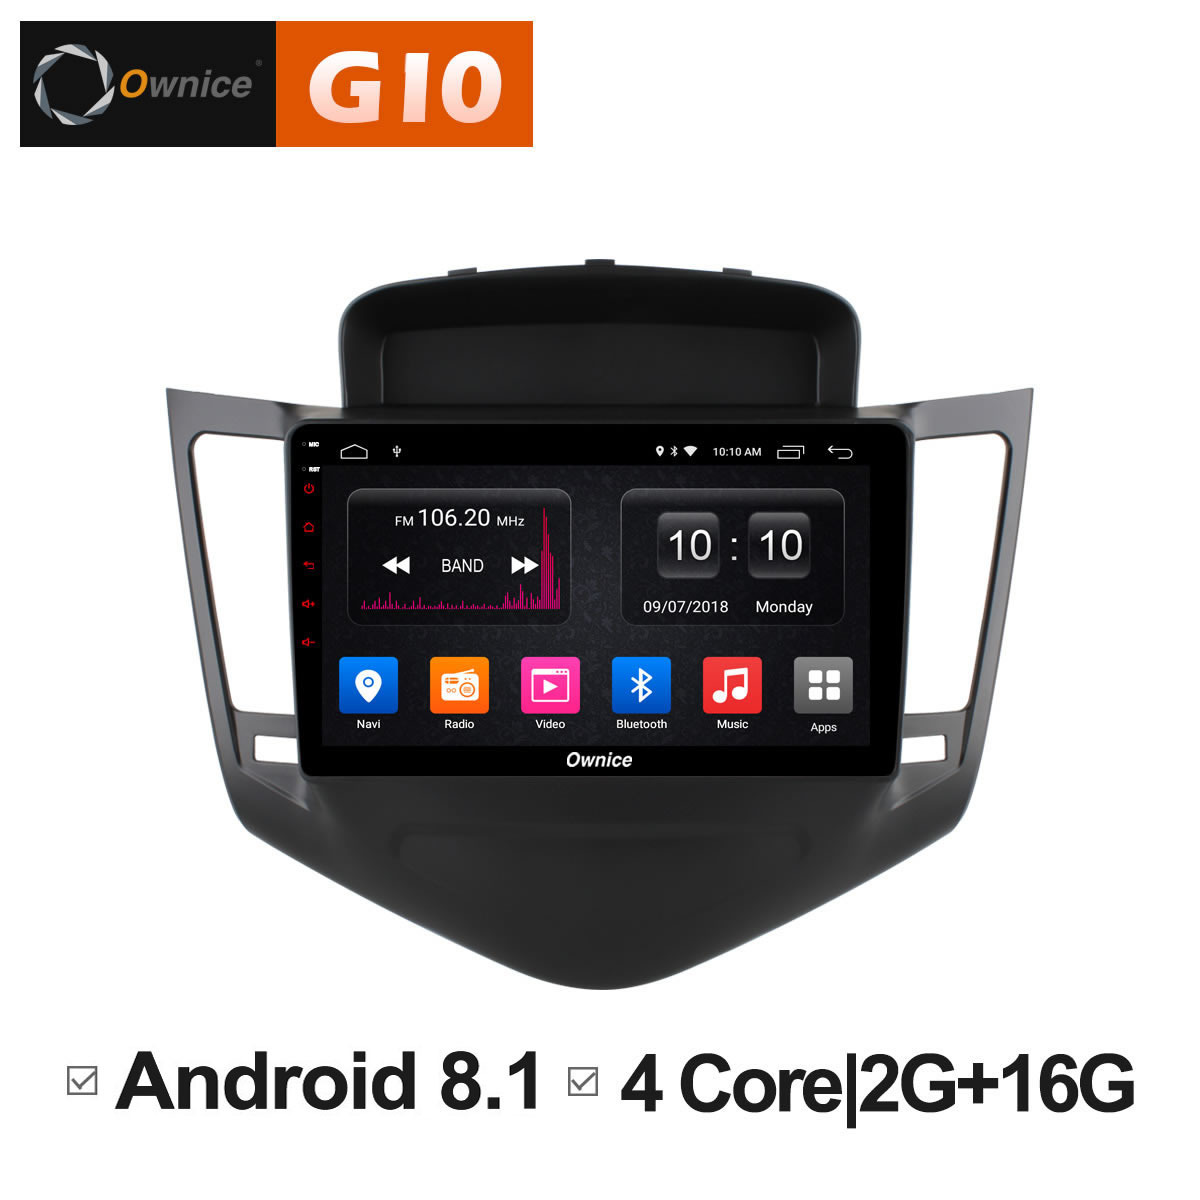 2 din IPS screen Android 8.1 car dvd gps Navigator Intelligent Entertainment Stereo for Chevrolet Cruze 2009 2010 2011 2013 2014